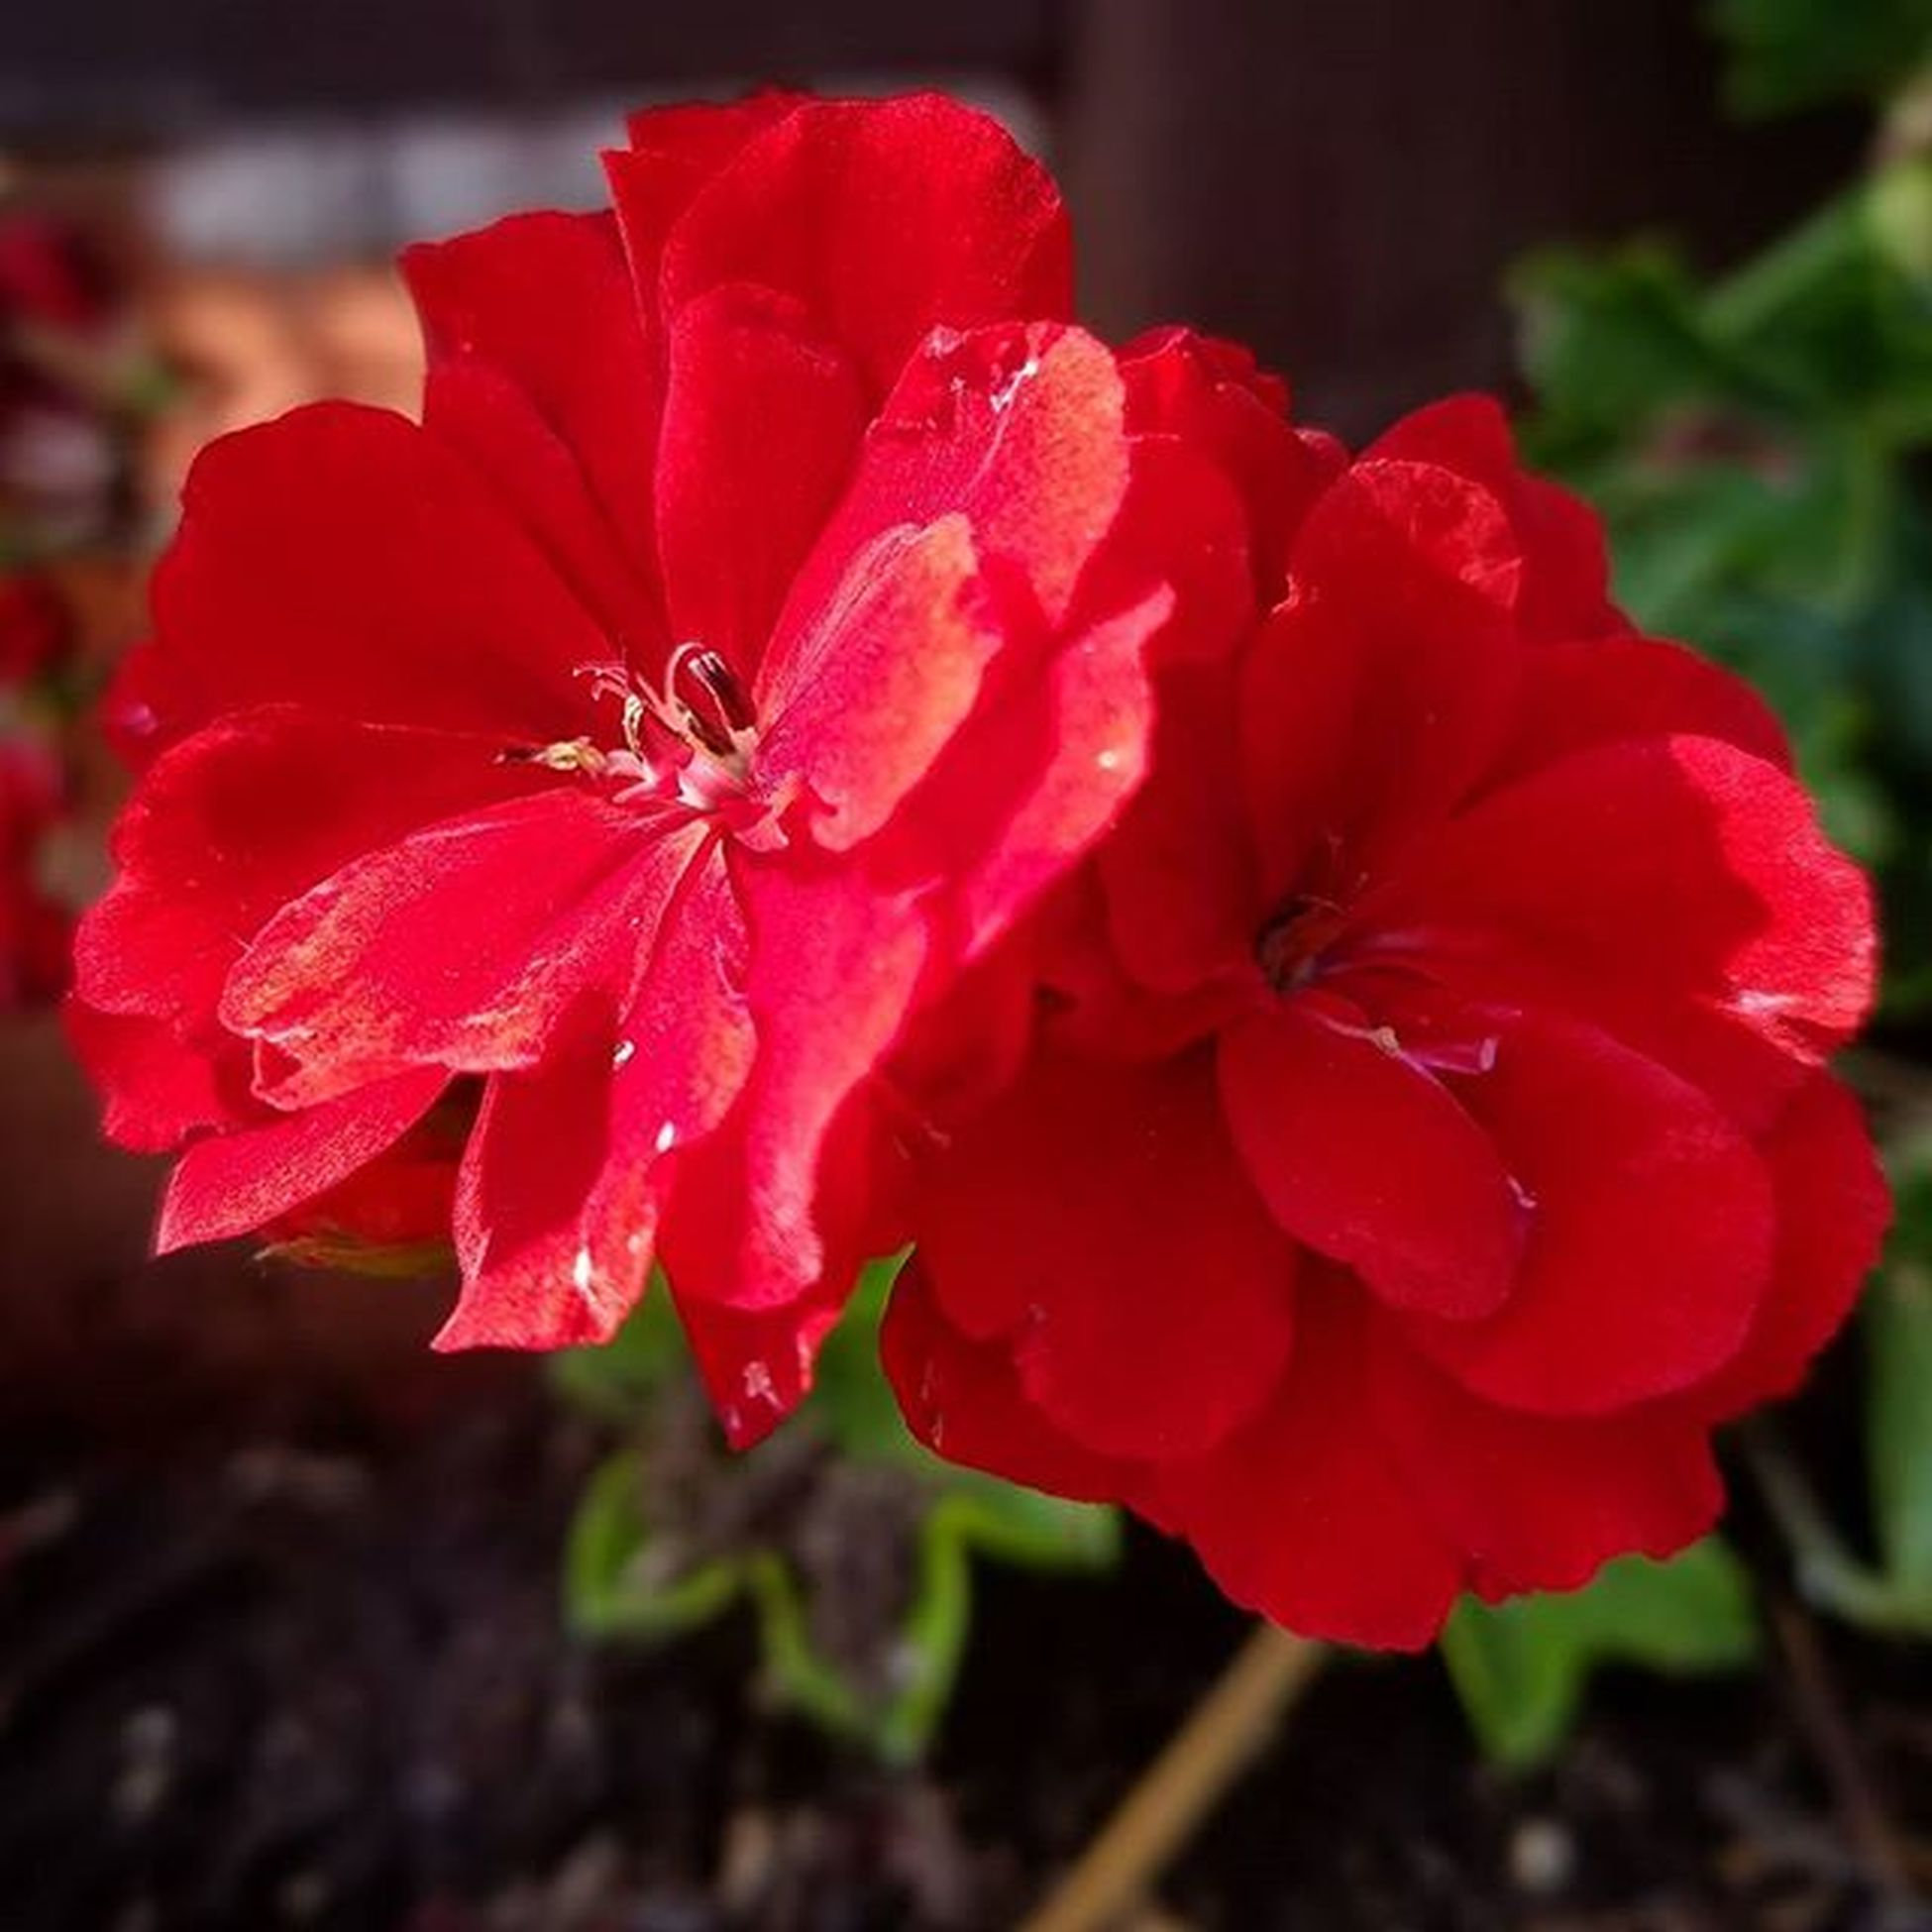 BrightDay Red Flowers Natural Garden Nature Instagram Beauty Lovely Perfectred